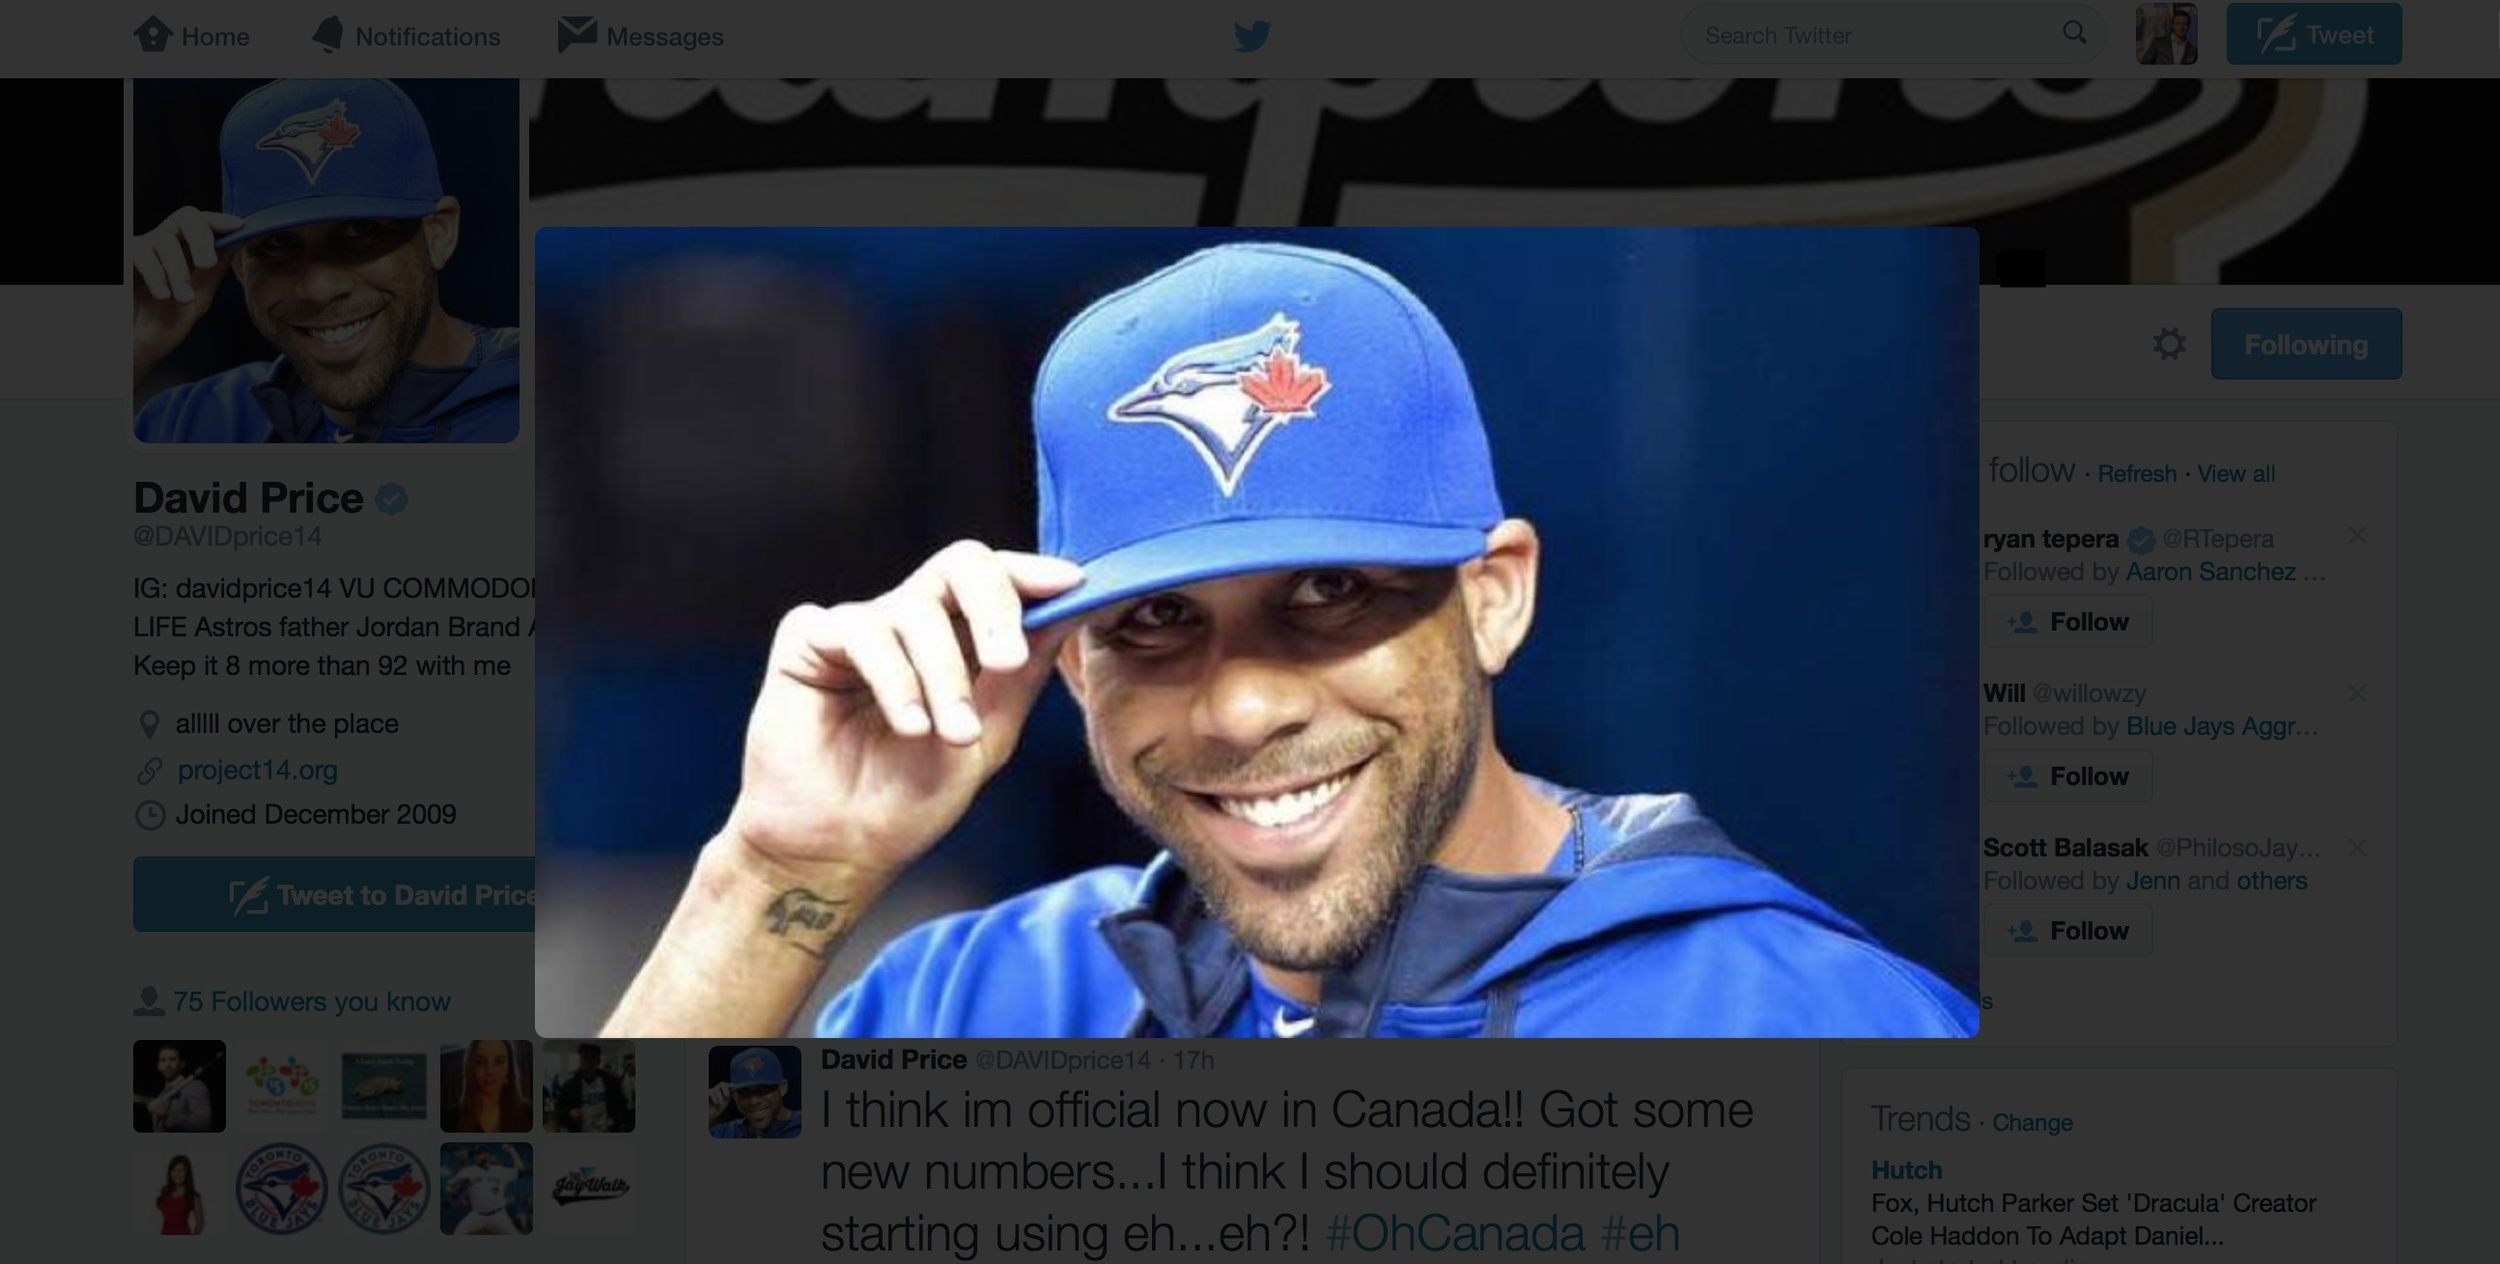 SECTION 108 RECAPS ALL THE EXCITEMENT SURROUNDING DAVID PRICE'S FIRST START... USING YOUR FAN TWEETS